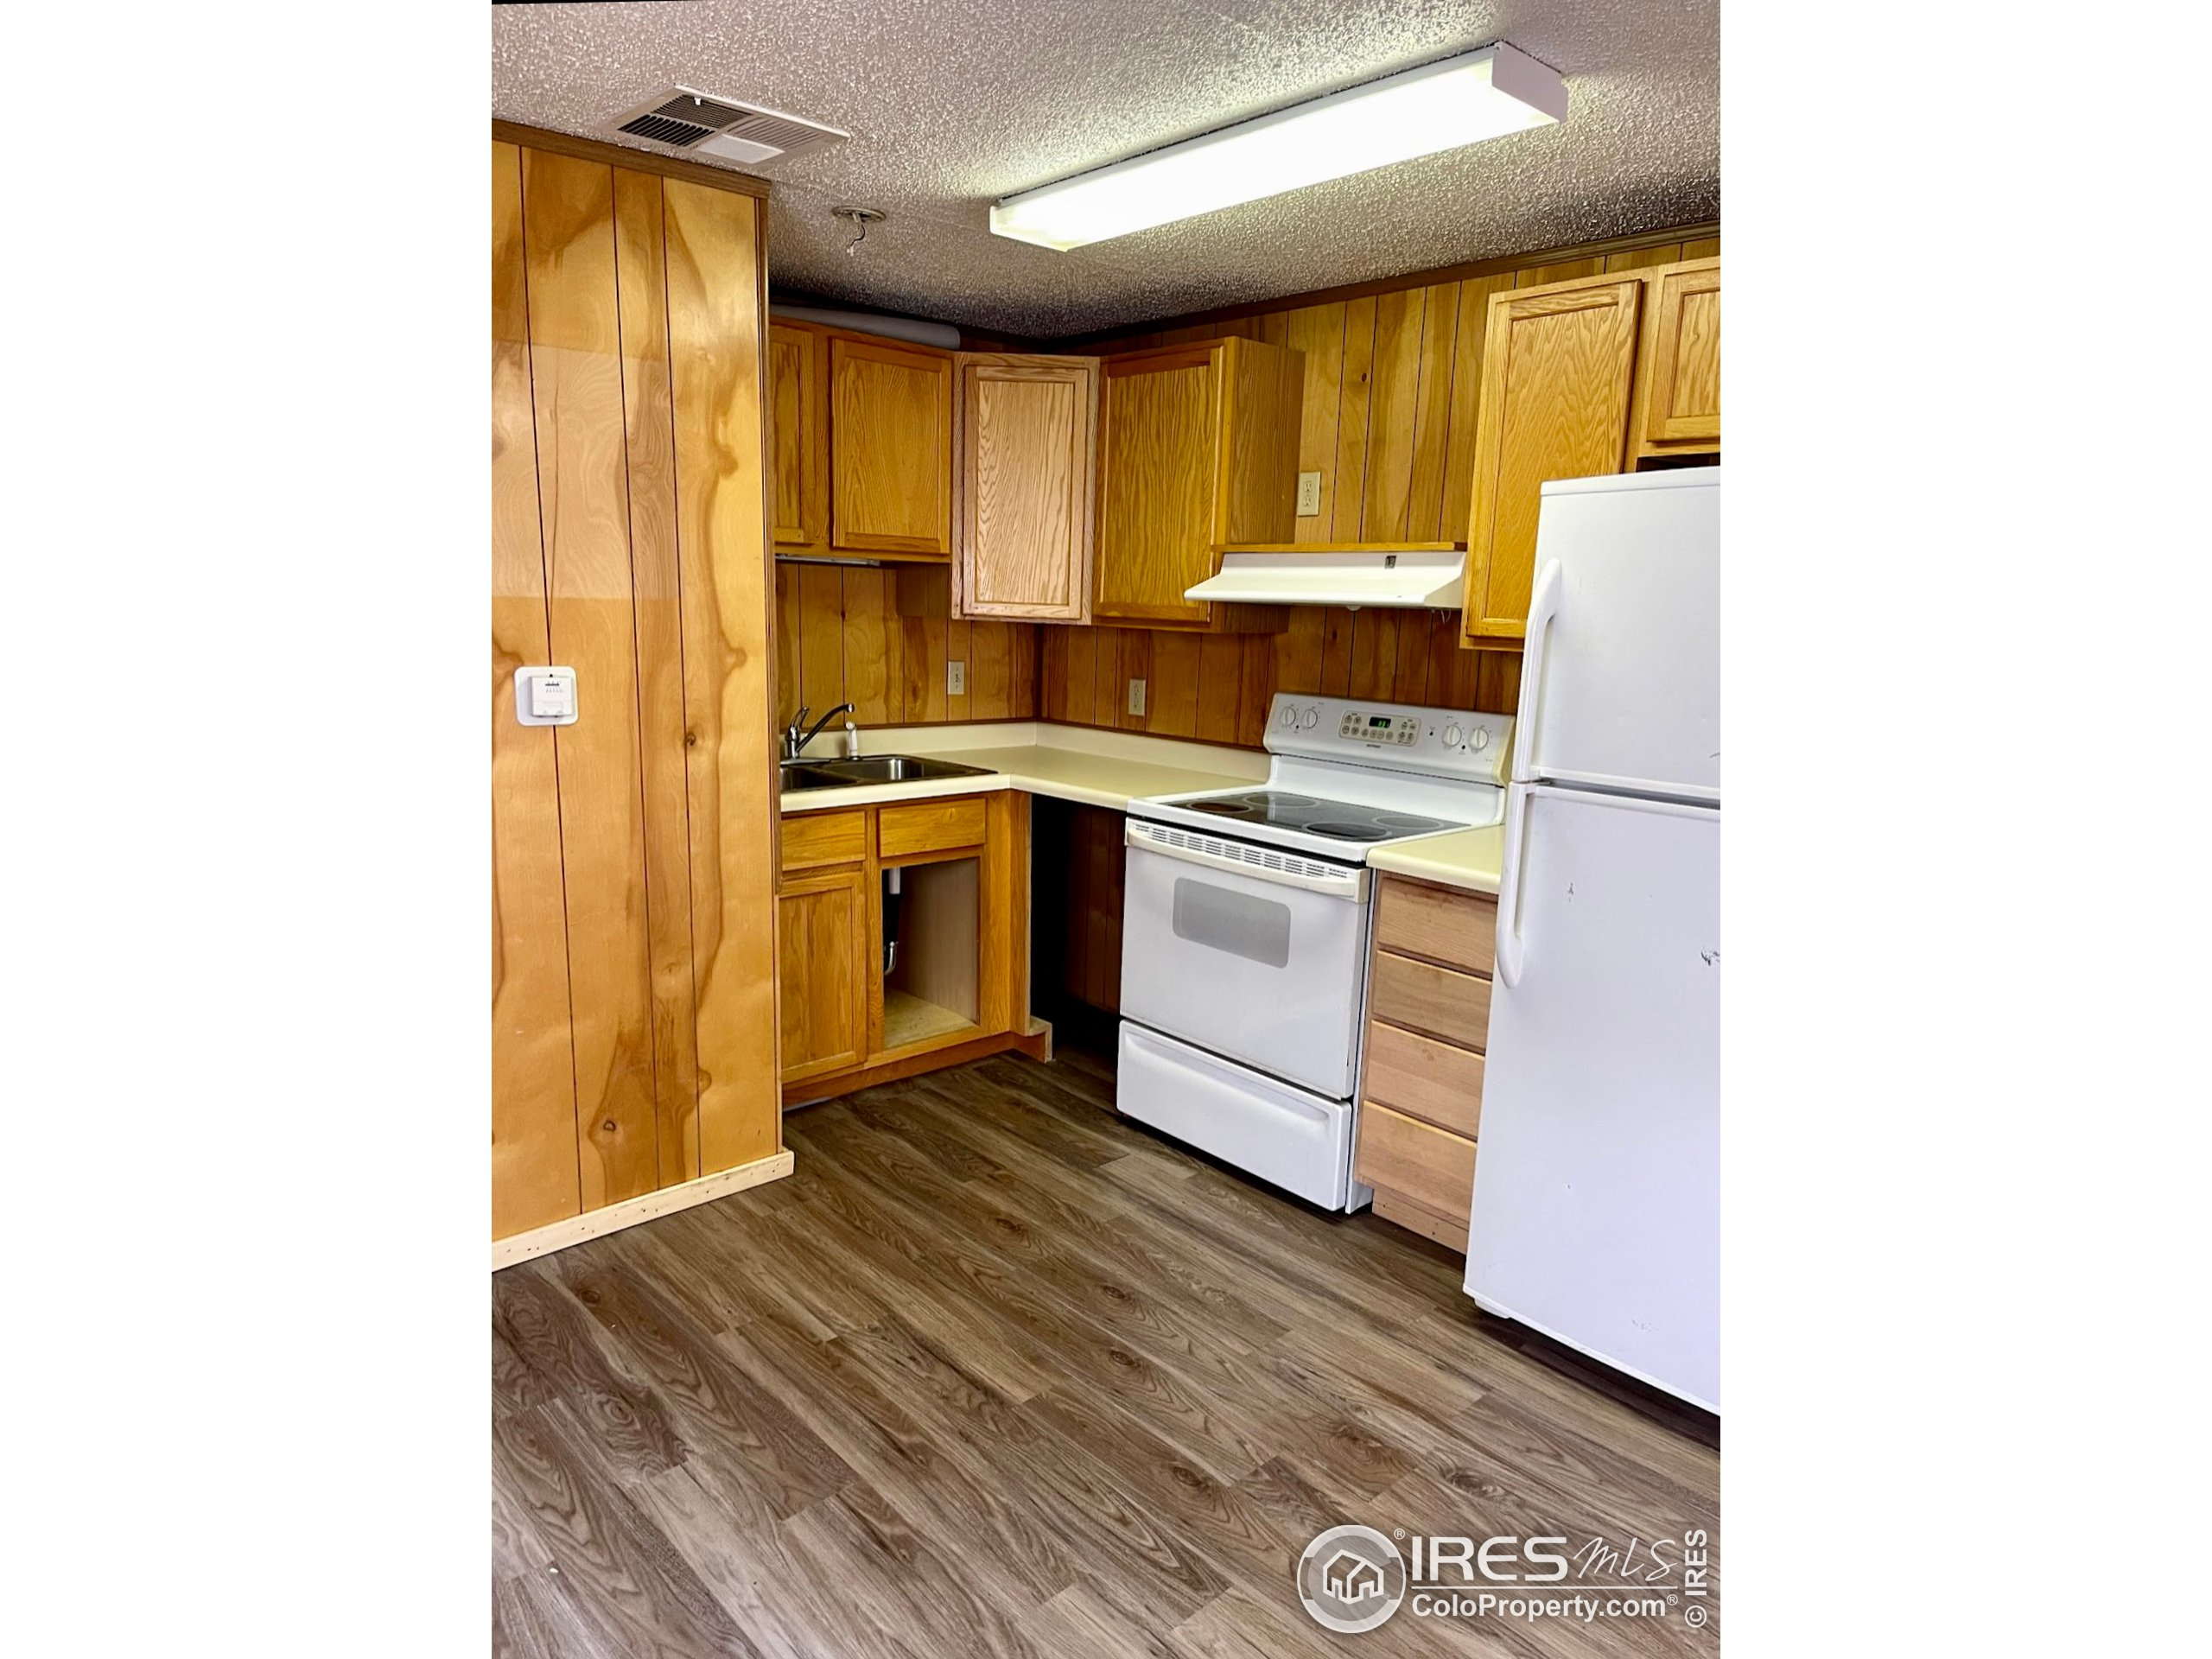 Newer appliances stay